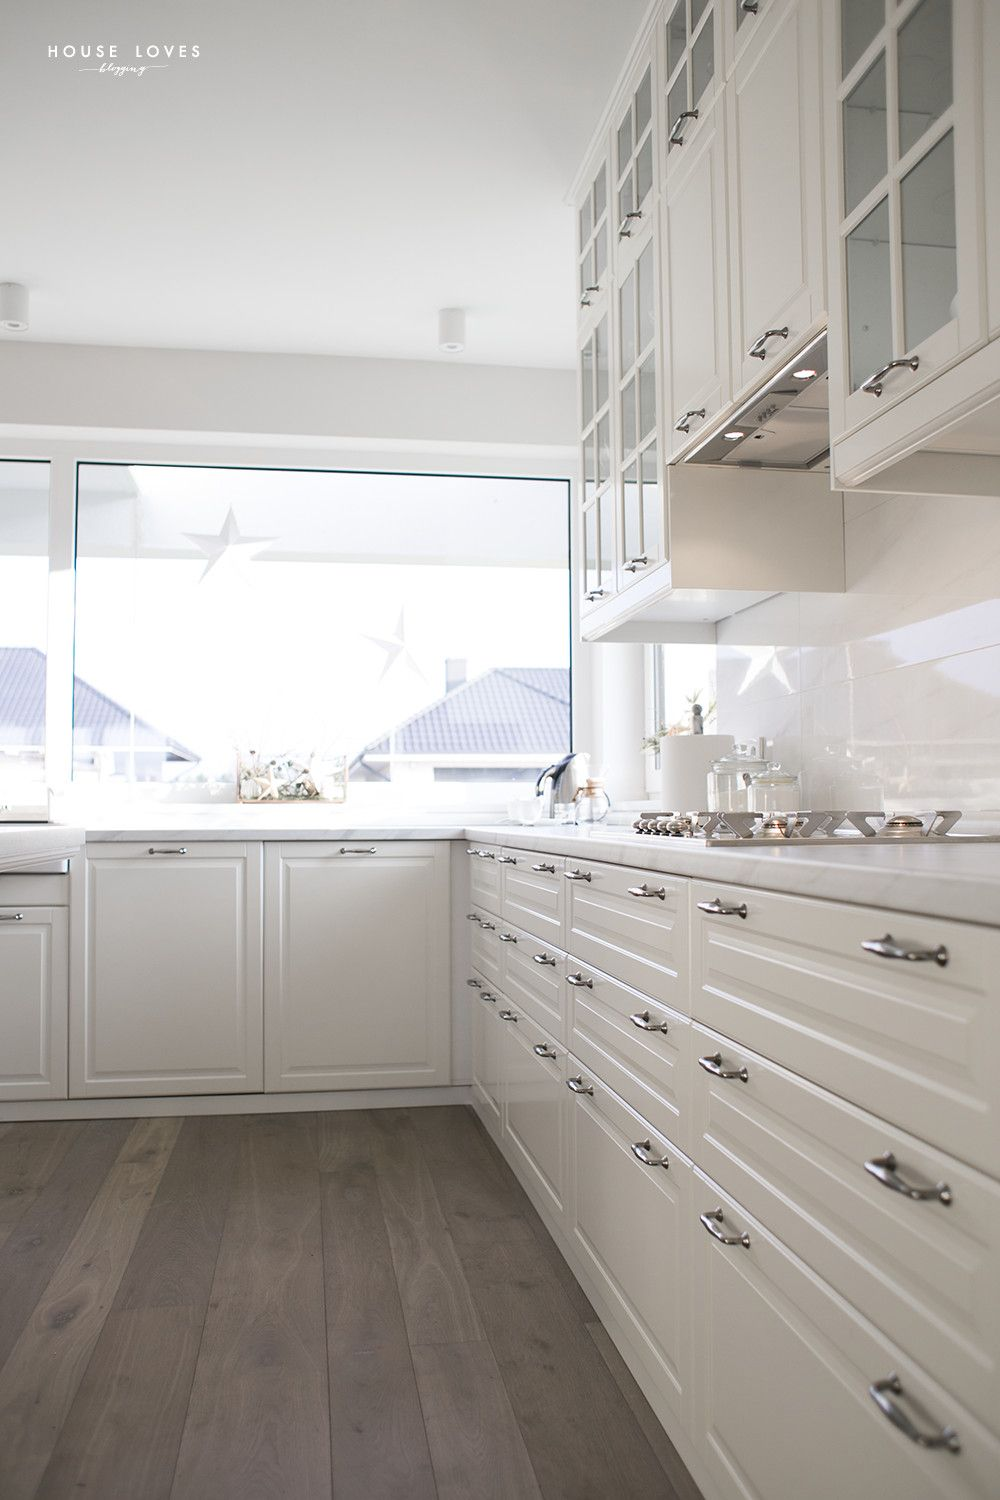 Carrelage Mural Cuisine Ikea luxury cost to install ikea kitchen cabinets | renovation